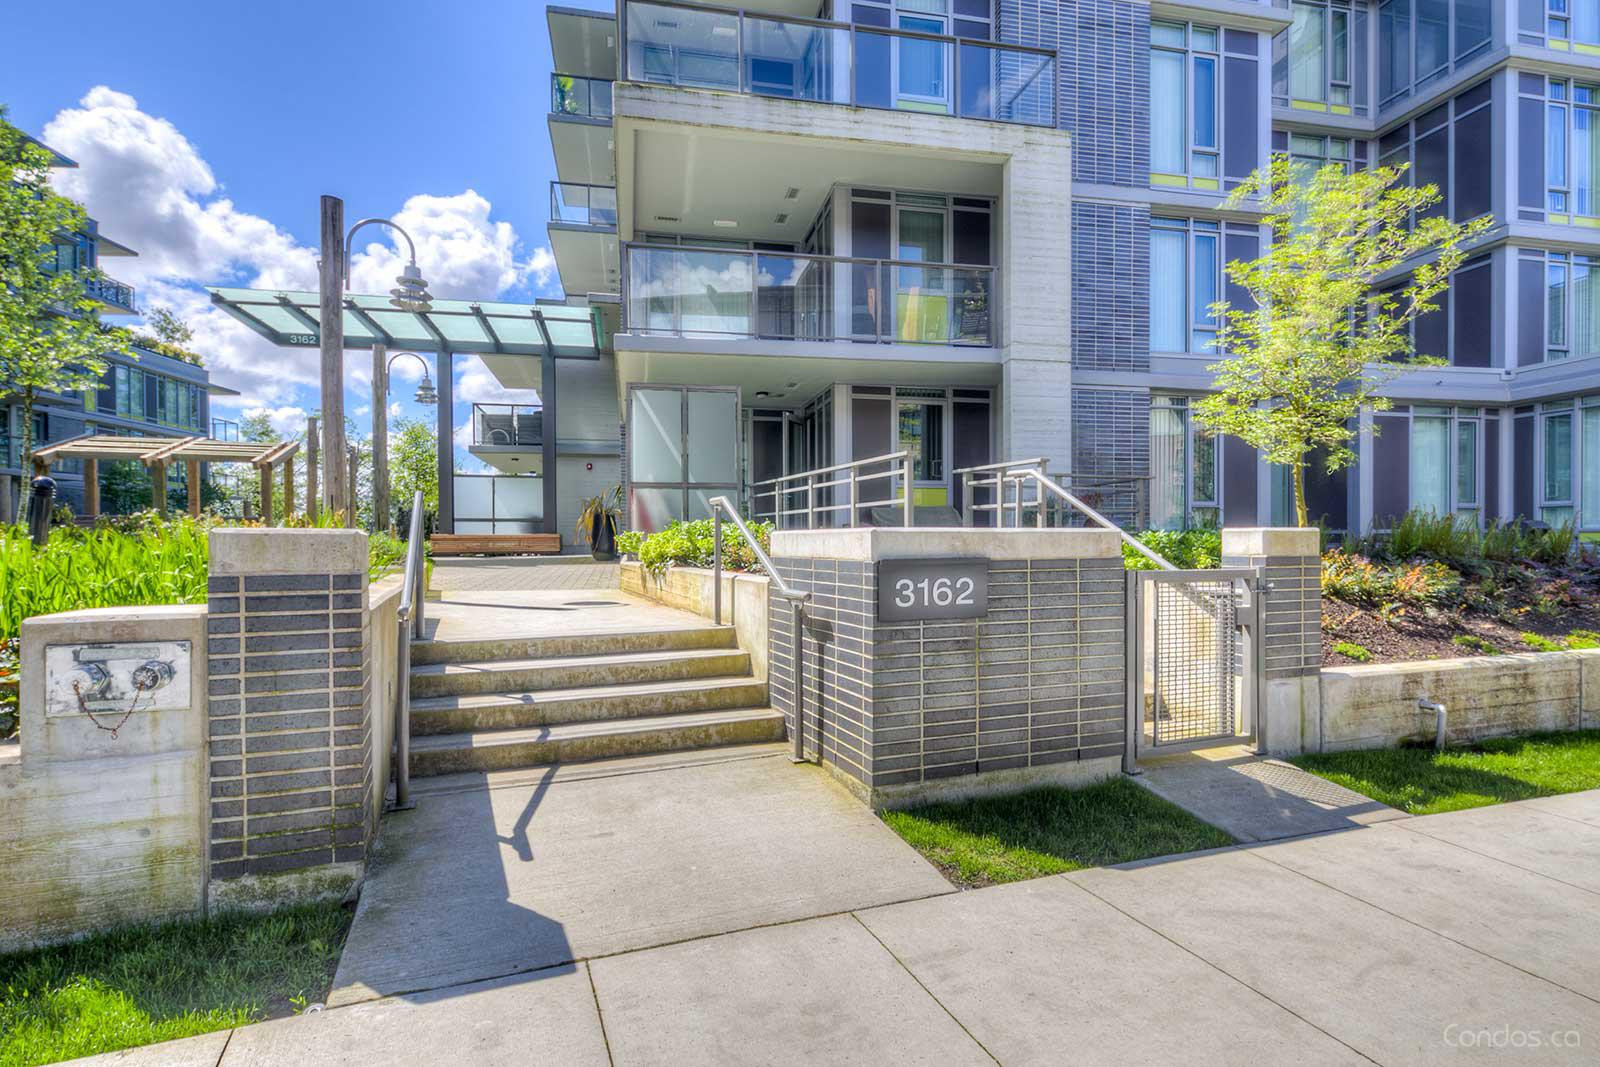 Shoreline at 3162 Riverwalk Ave, Vancouver 1